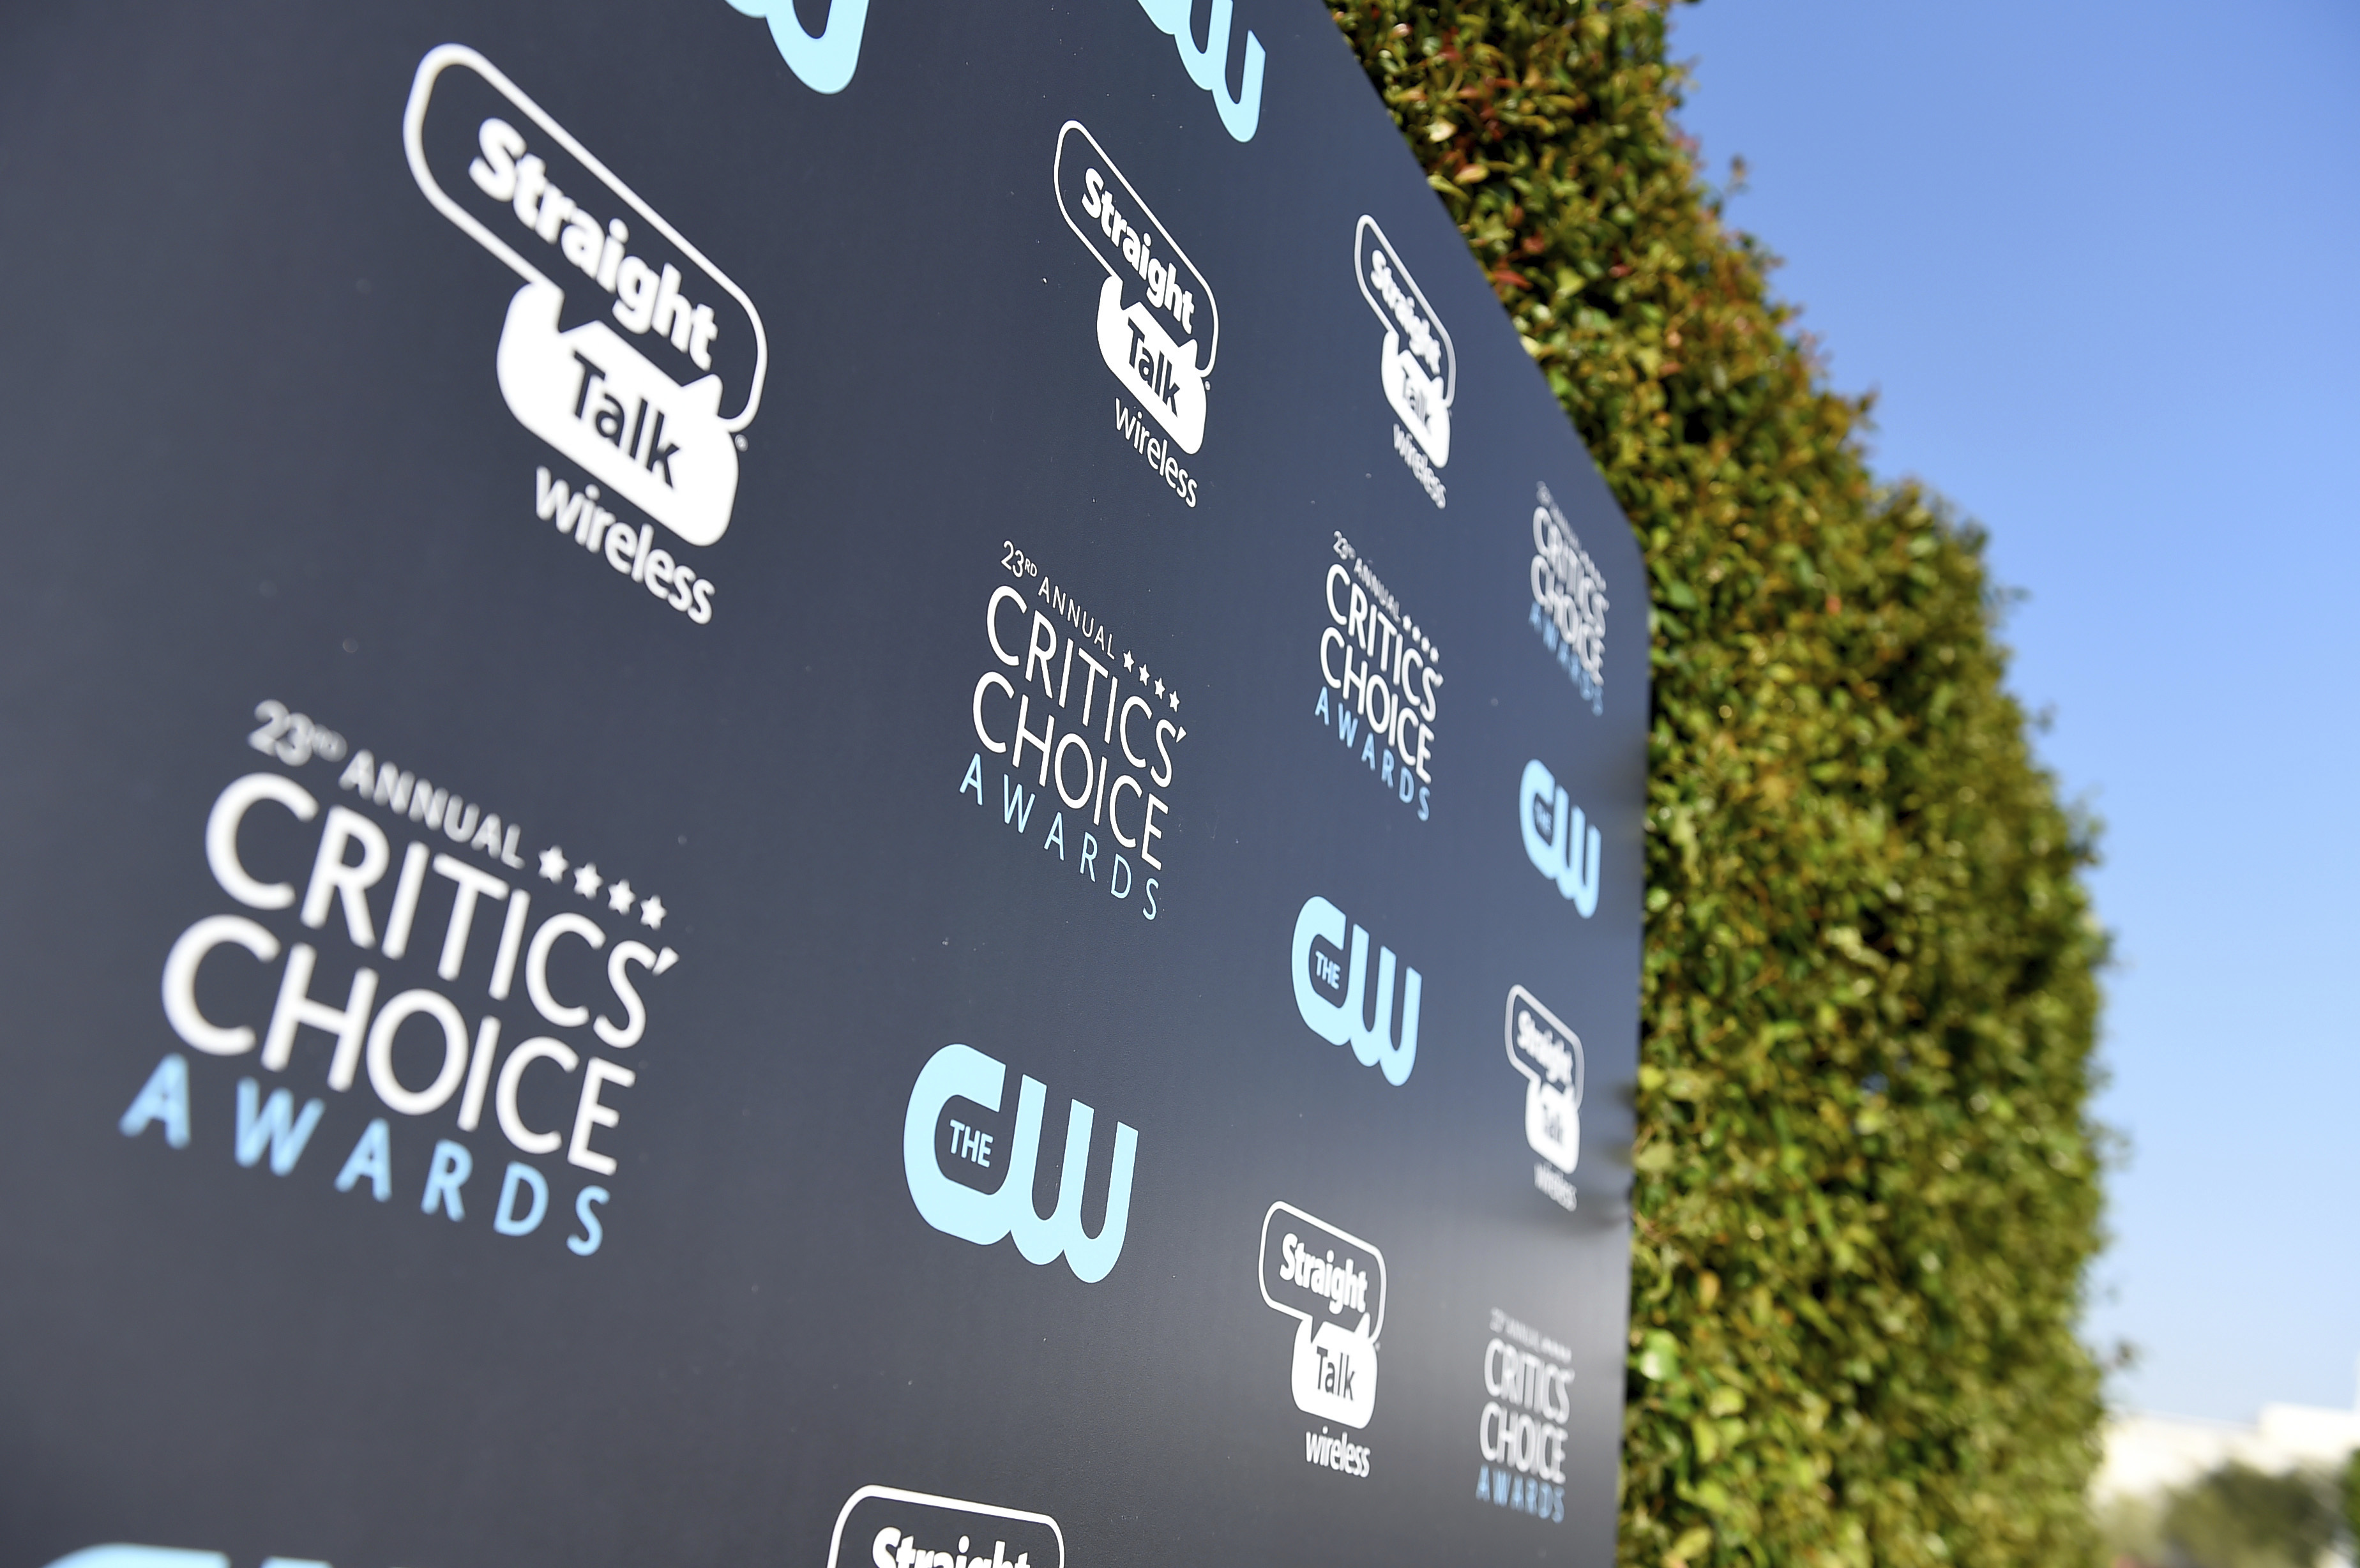 <div class='meta'><div class='origin-logo' data-origin='AP'></div><span class='caption-text' data-credit='Jordan Strauss/Invision/AP'>Signage appears outside the Barker Hangar for the 23rd annual Critics' Choice Awards on Thursday, Jan. 11, 2018, in Santa Monica, Calif.</span></div>